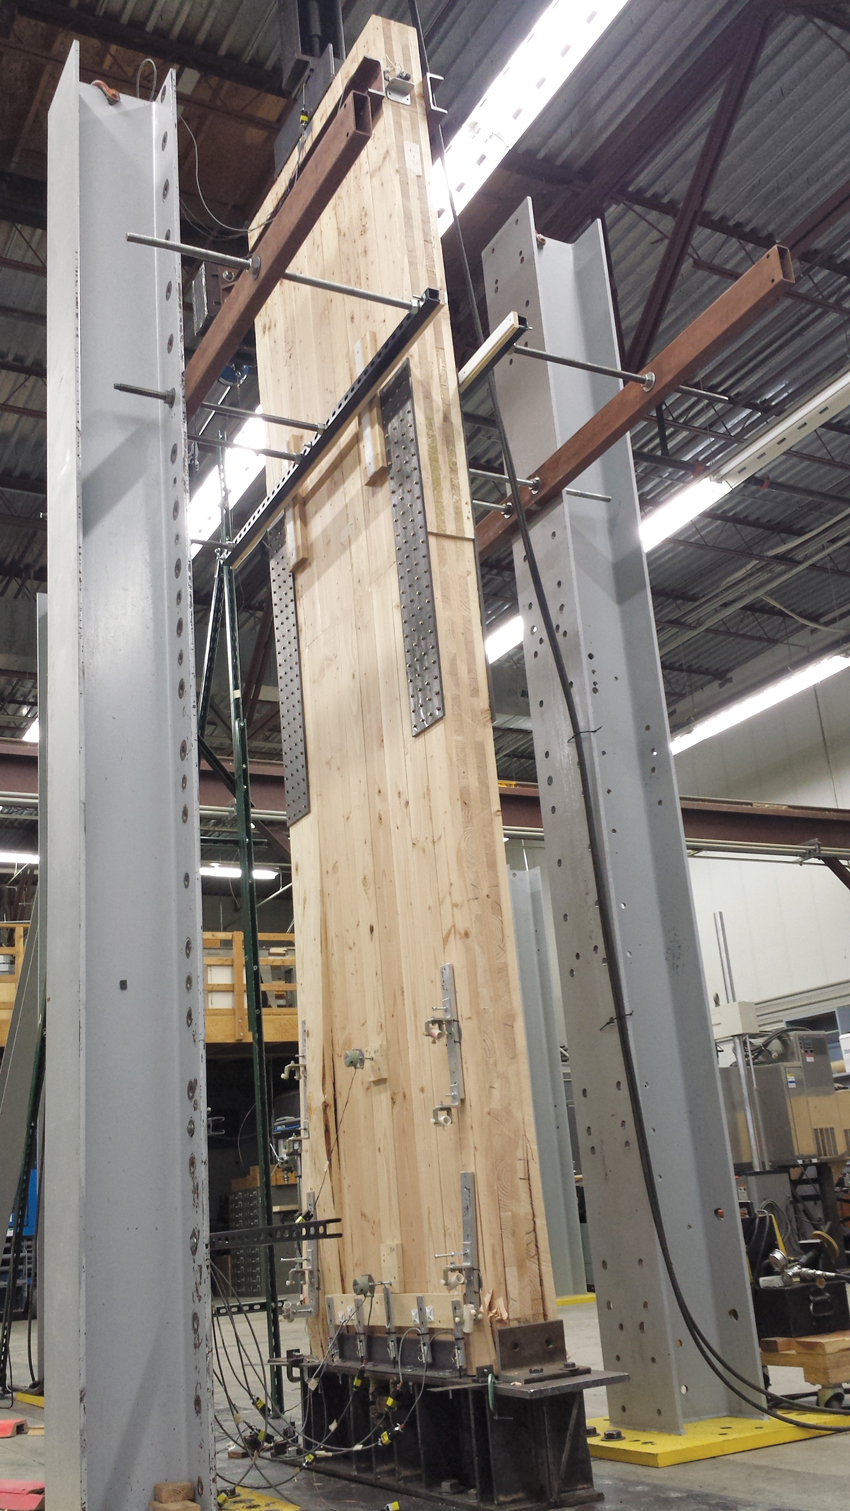 In this rocking test of a CLT shear wall, the panel maintained its lateral load-bearing strength under cycling loading to simulate seismic conditions and returned to a vertical position at completion of the test.